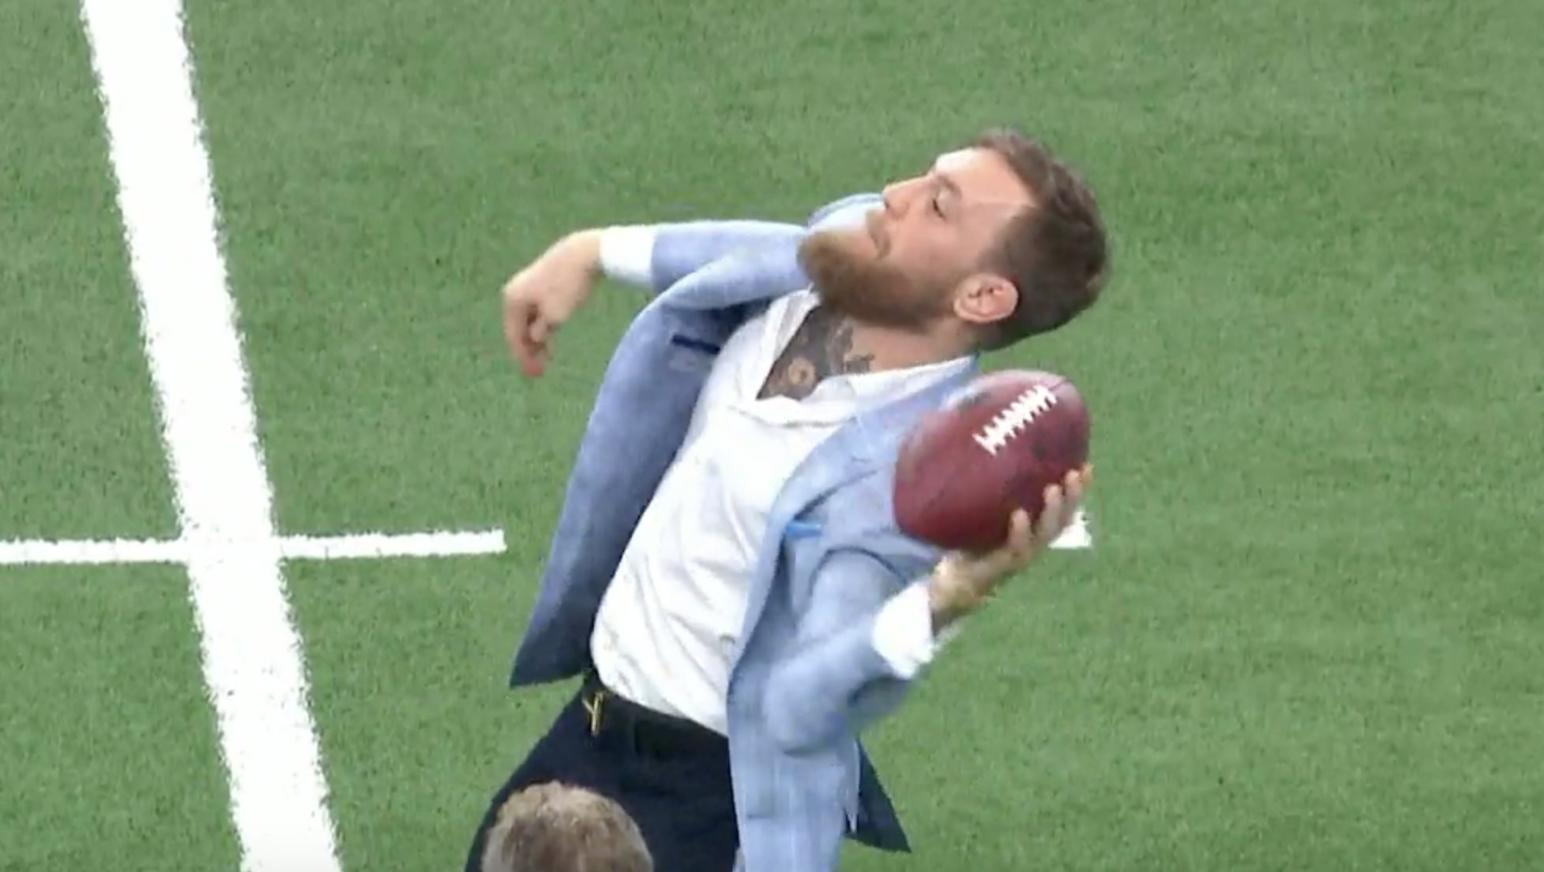 Conor McGregor can't throw a football, but we're not going to tell him that